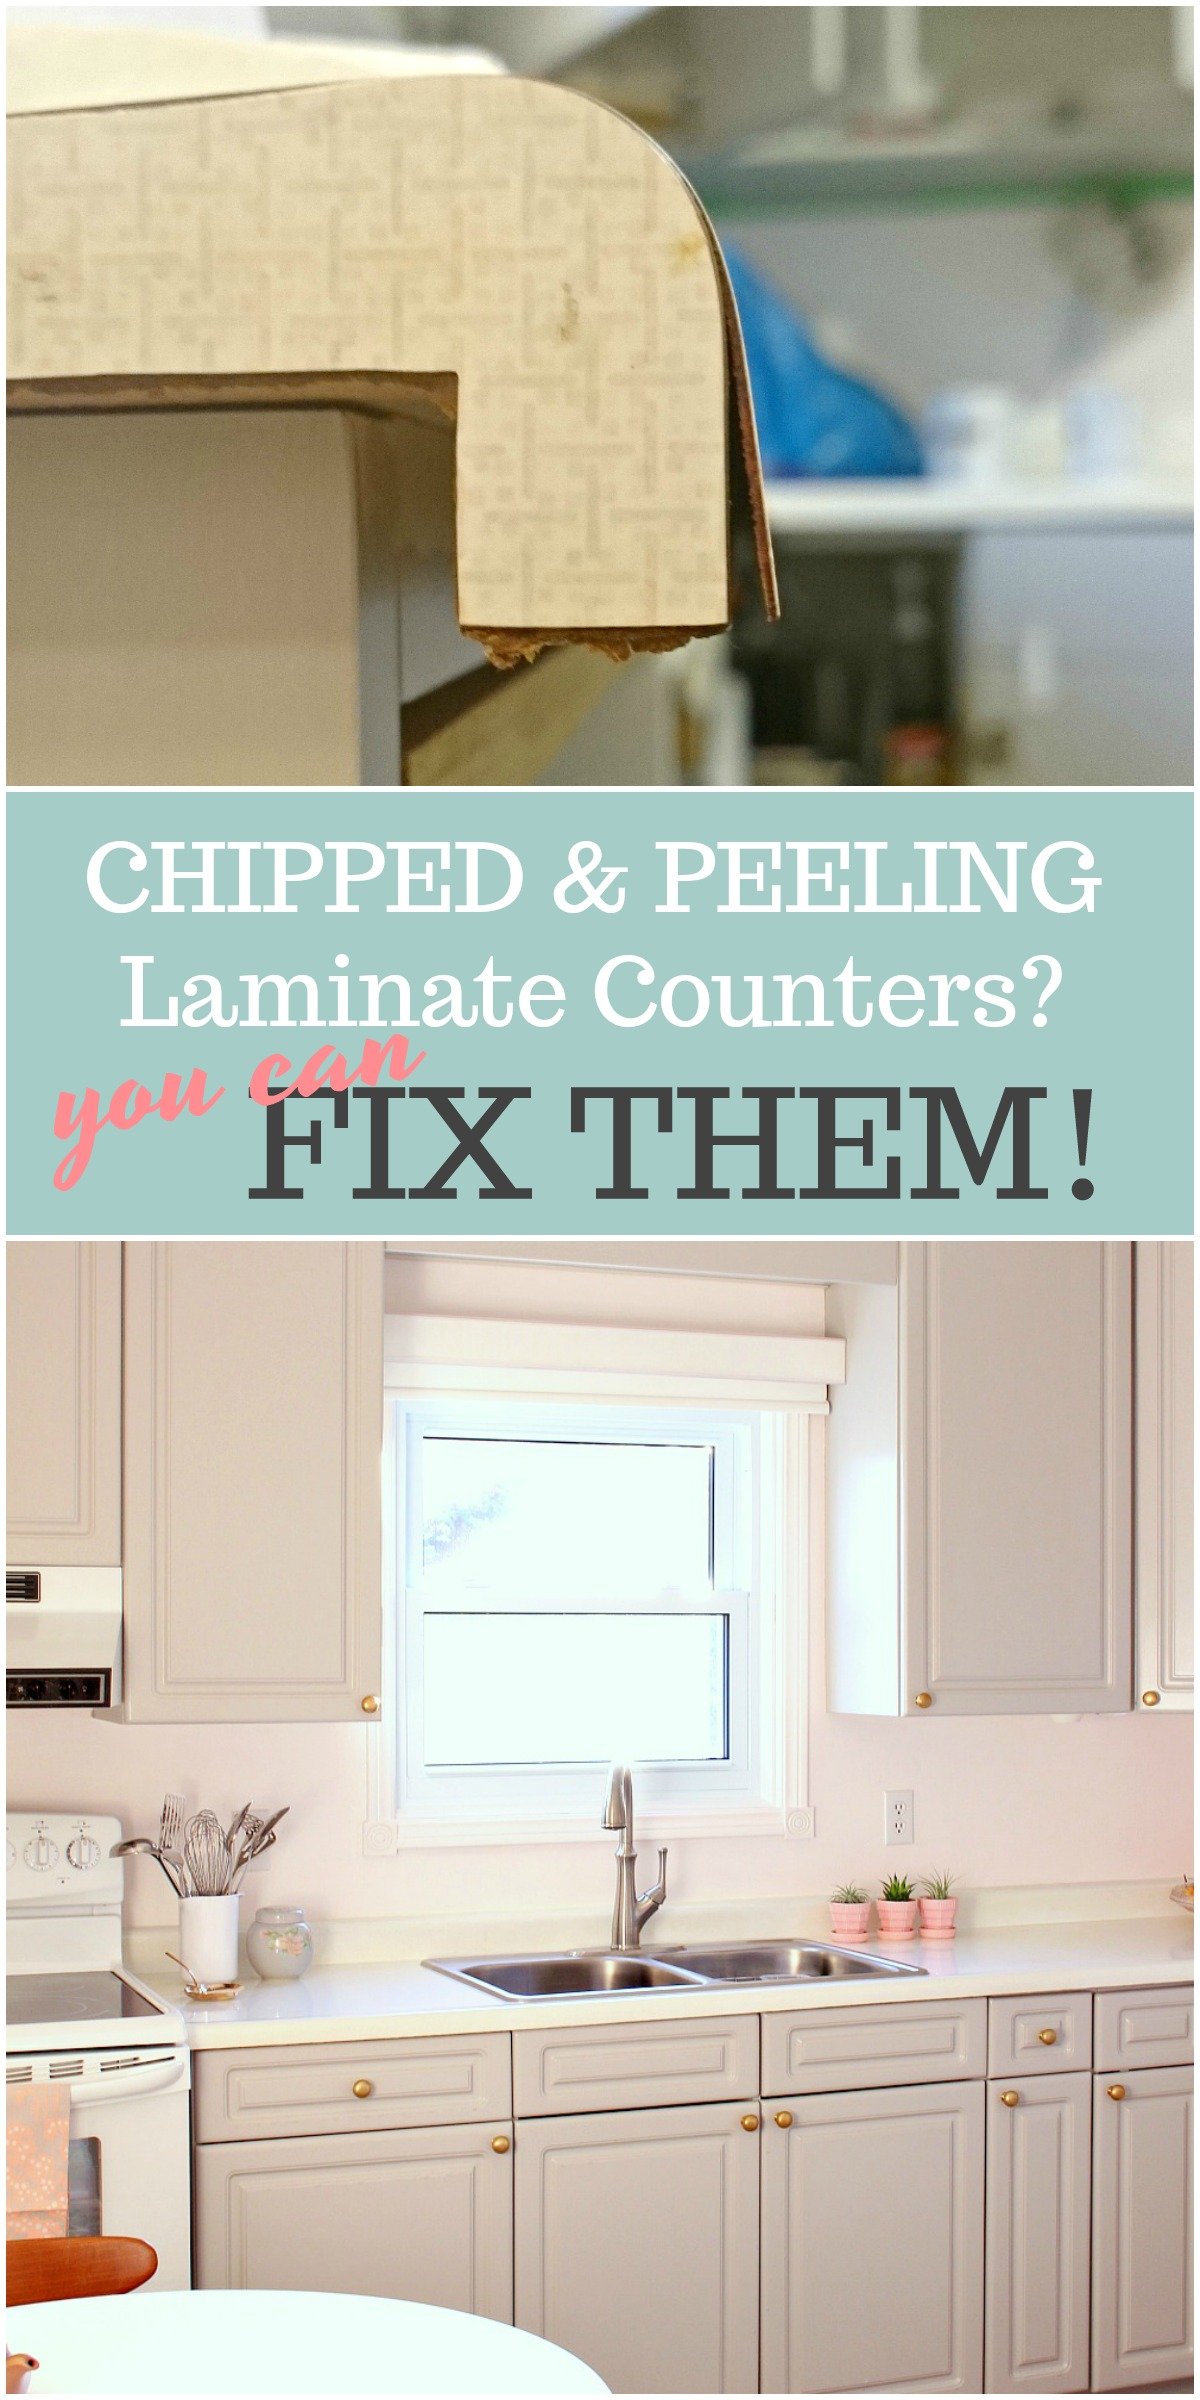 How To Fix Formica Countertops How To Repair And Refinish Laminate Counters Dans Le